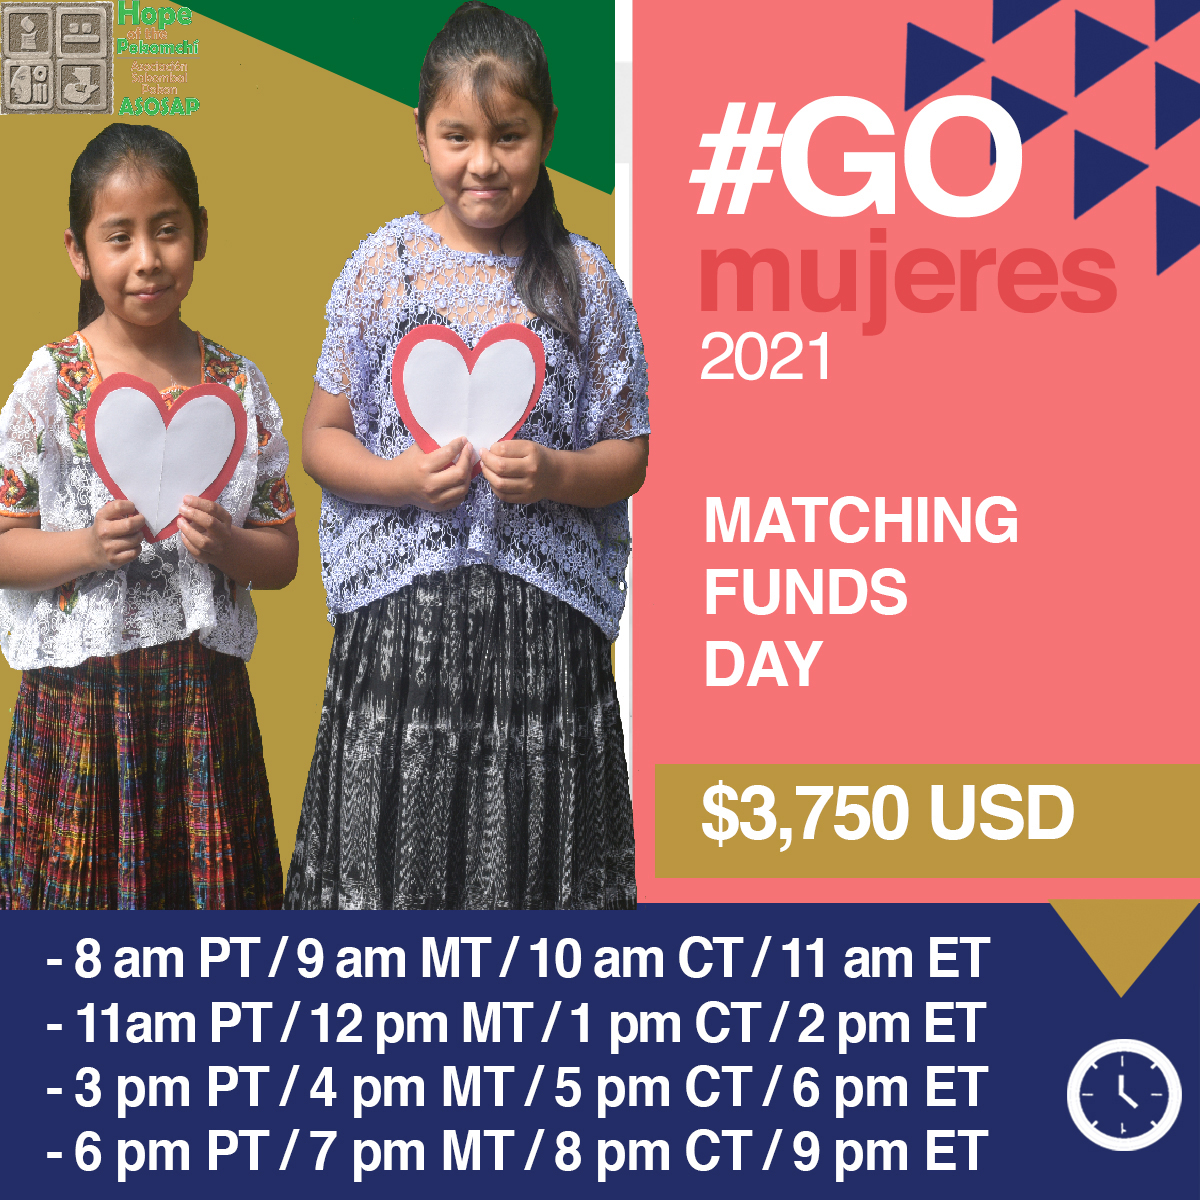 Matching Funds Image for March.8th